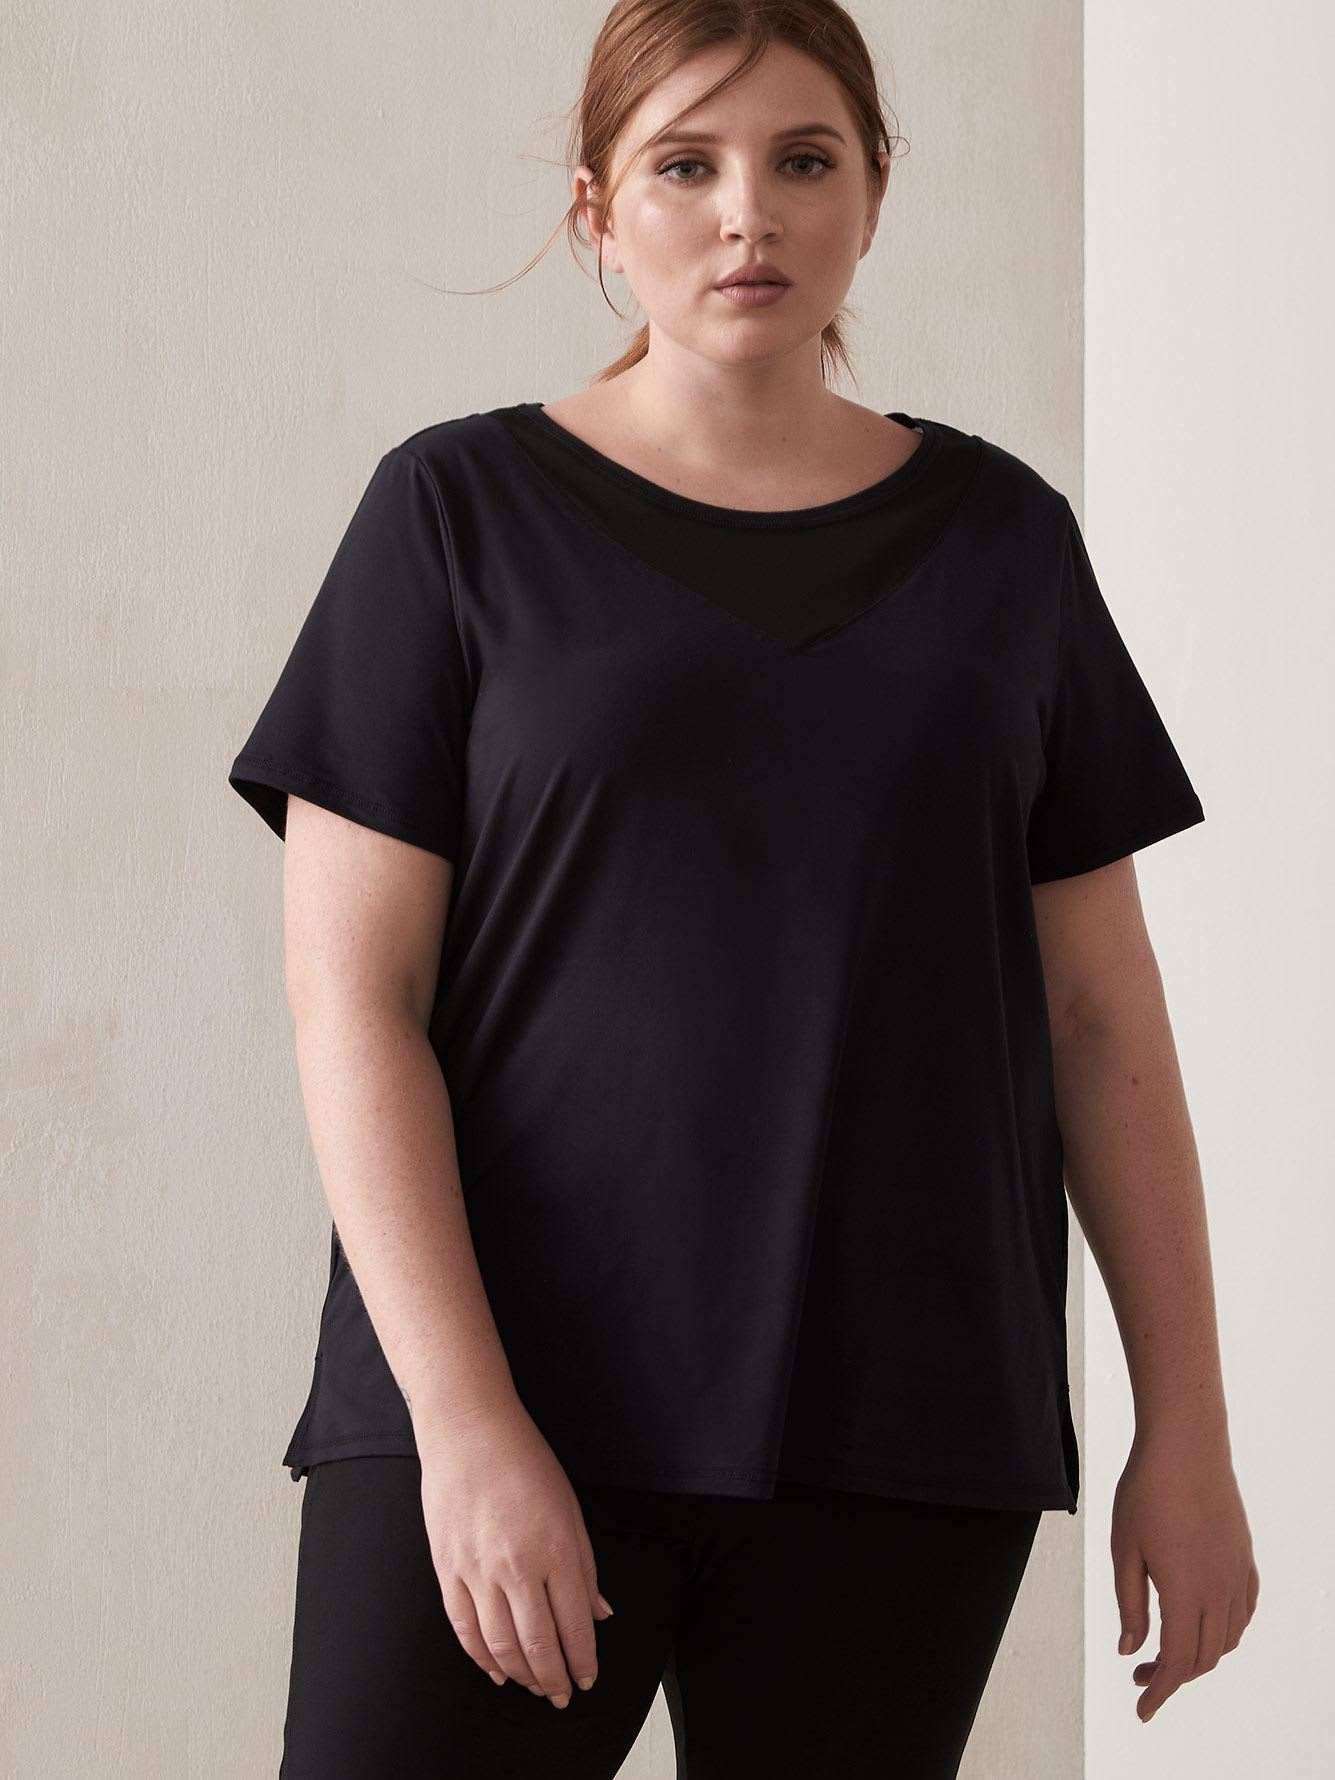 Black Short-Sleeve Top with Mesh Inserts